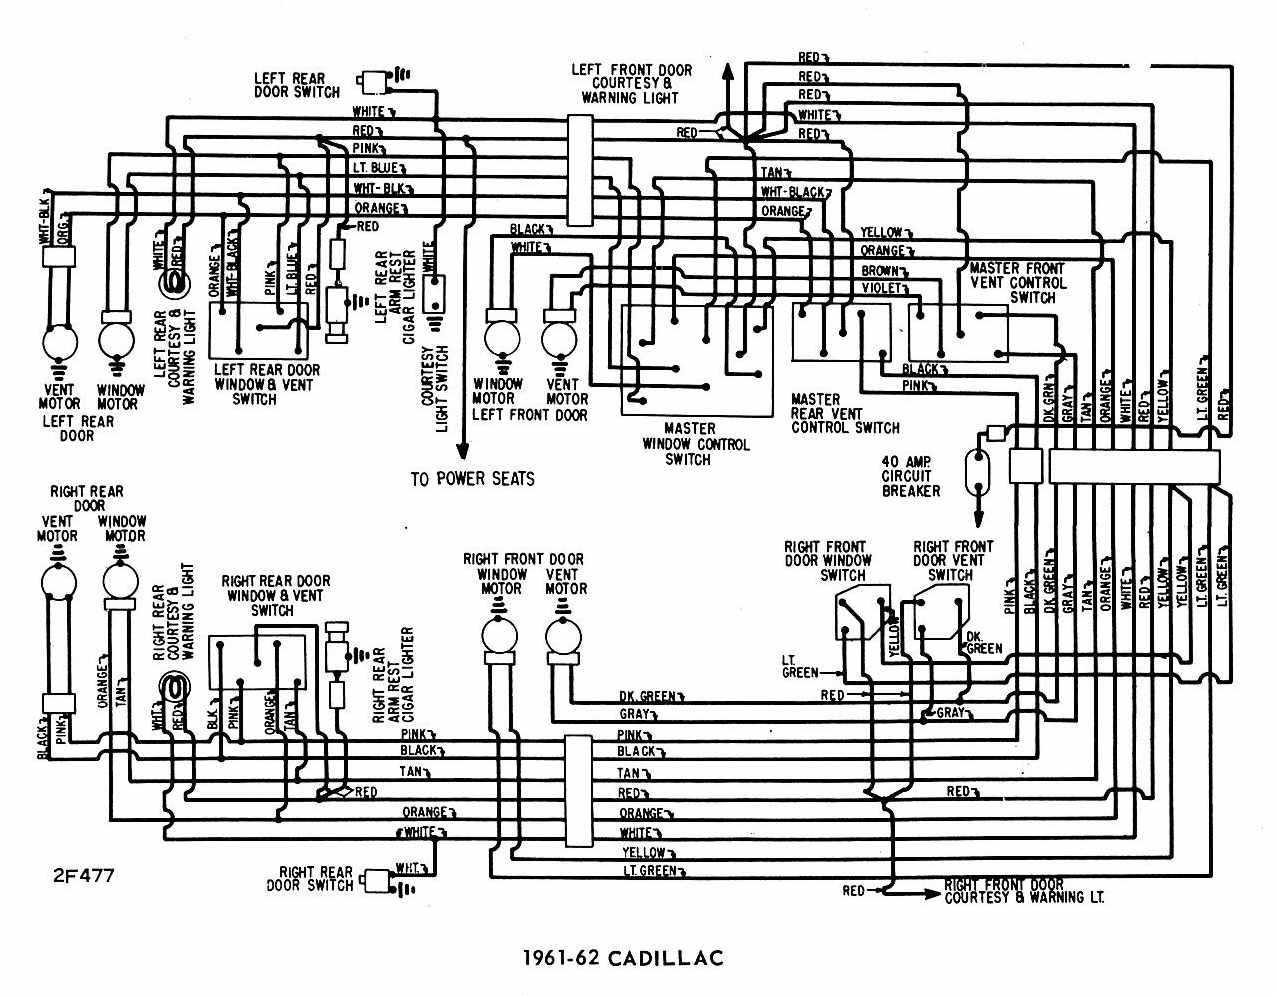 windows wiring diagram of 1961 62 cadillac?t=1508149295 cadillac car manuals, wiring diagrams pdf & fault codes cadillac srx wiring diagram at crackthecode.co